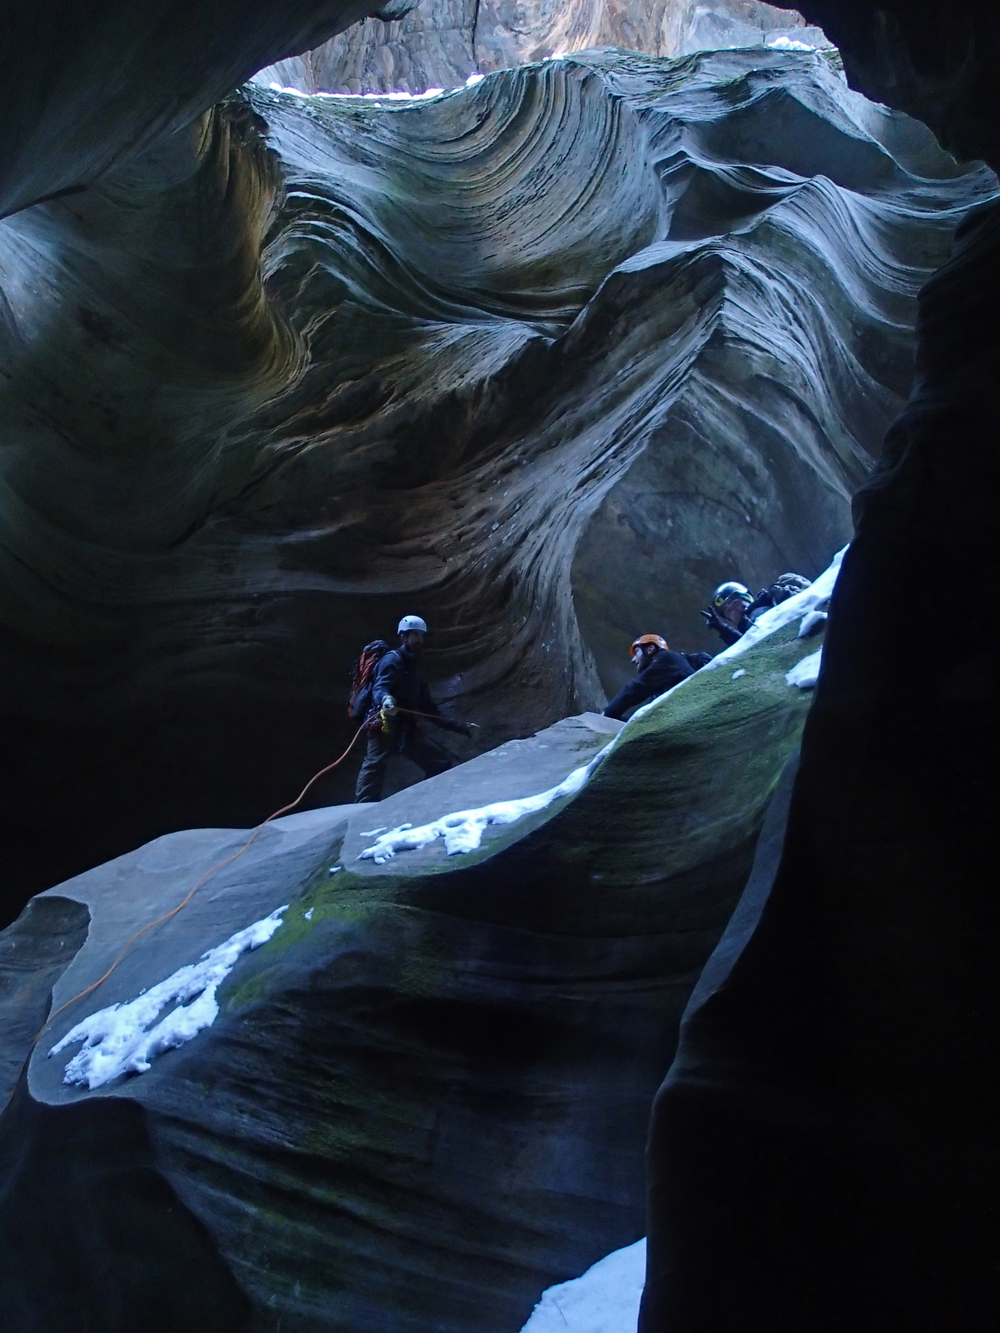 Bear Canyon - Canyoneering, AZ